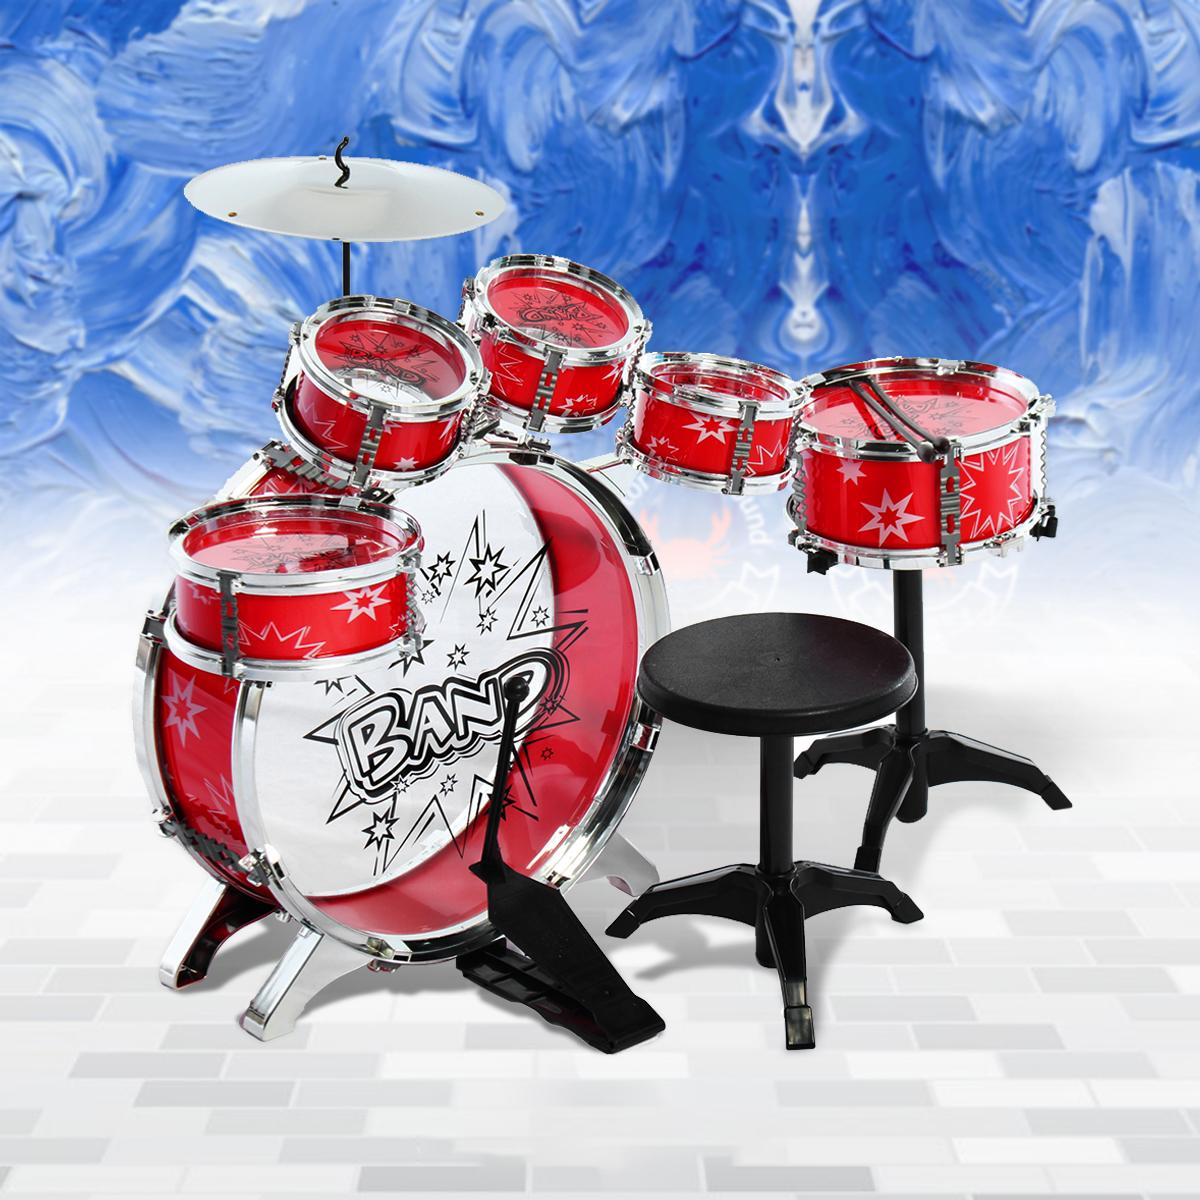 Kids Children Junior Drum Set Drums Kit Percussion Musical Instrument With Cymbal Drumsticks Adjustable Stool Intl For Sale